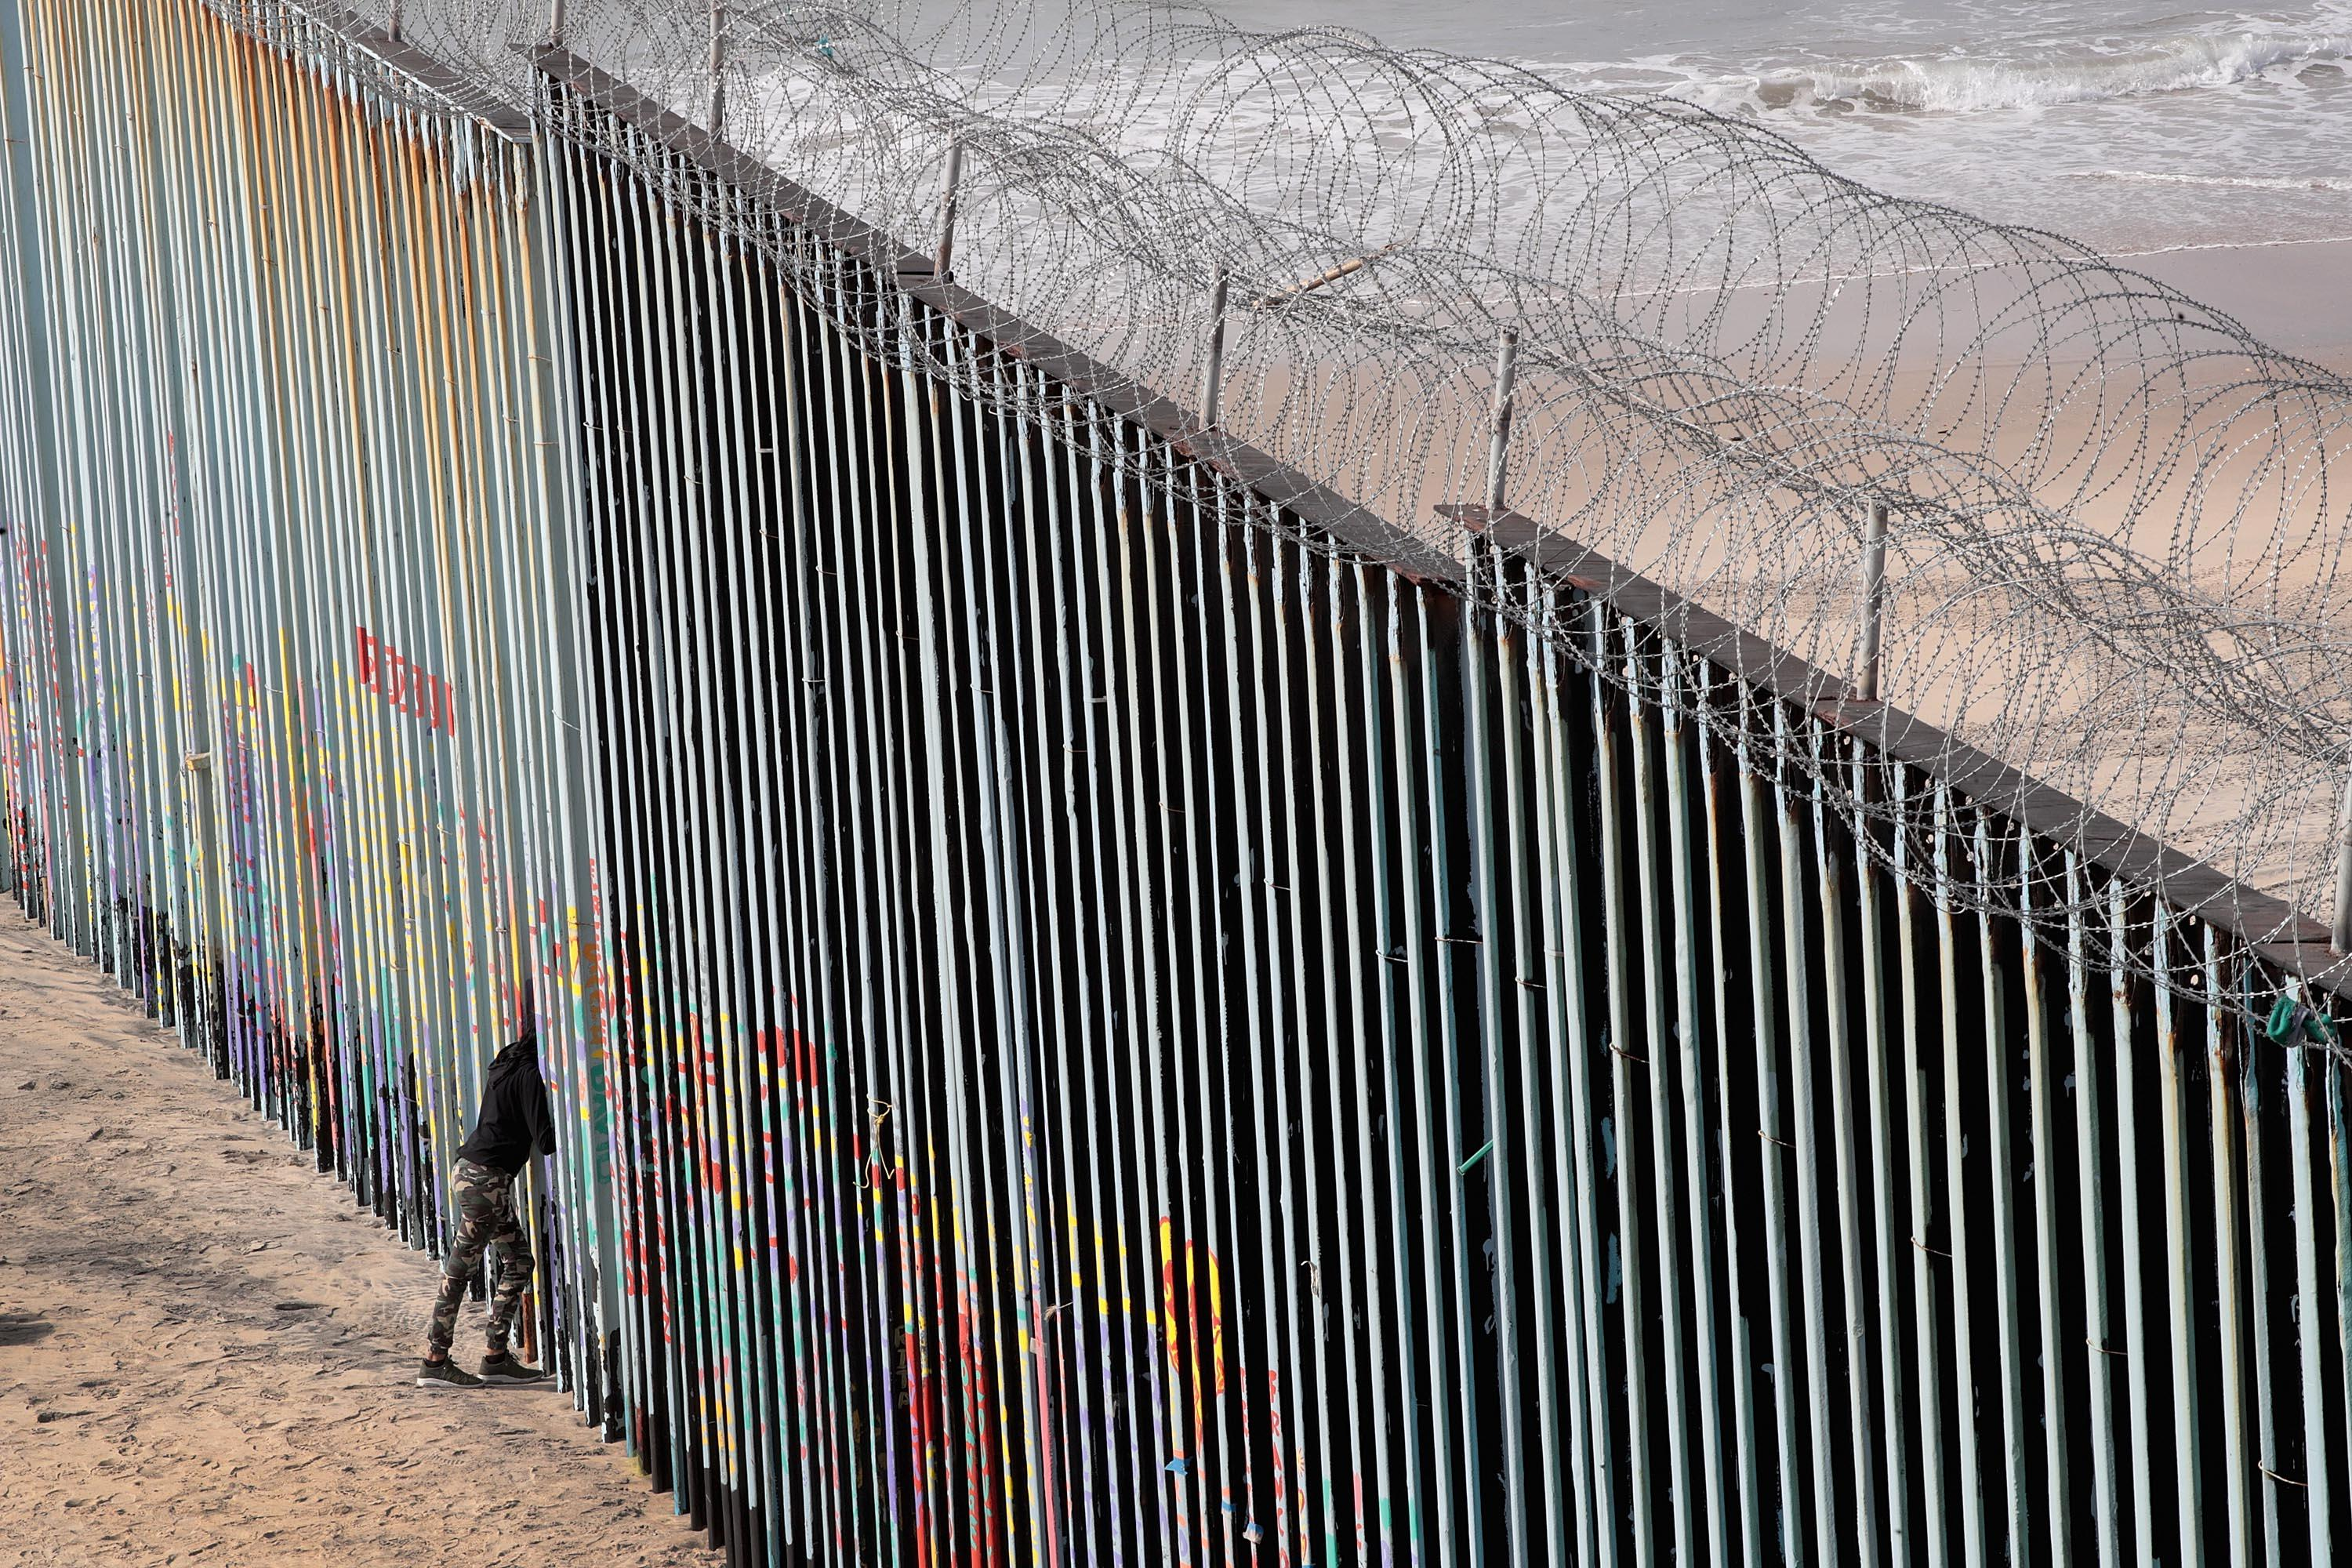 A woman looks through the border wall that separates the U.S. and Mexico on January 28, 2019 in Tijuana, Mexico.